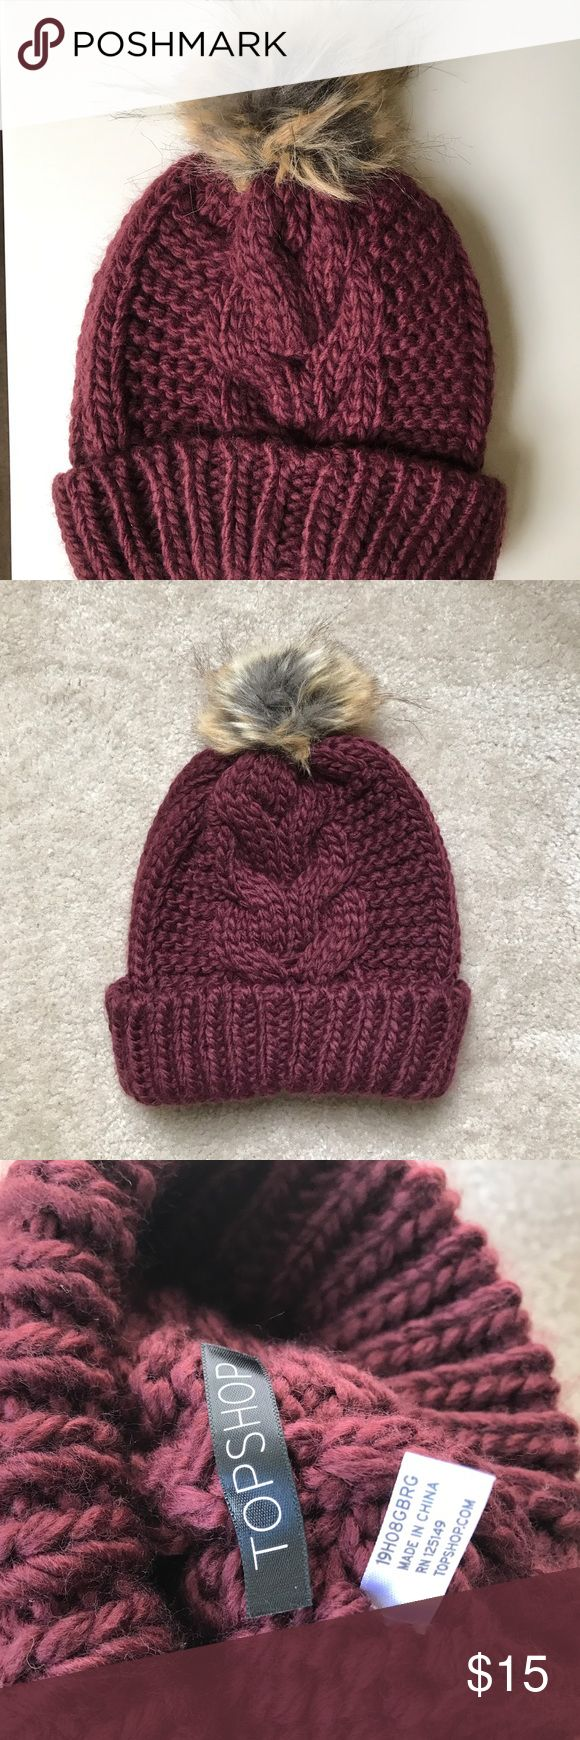 NWOT Topshop hat New without tag, one size. Topshop Accessories Hats